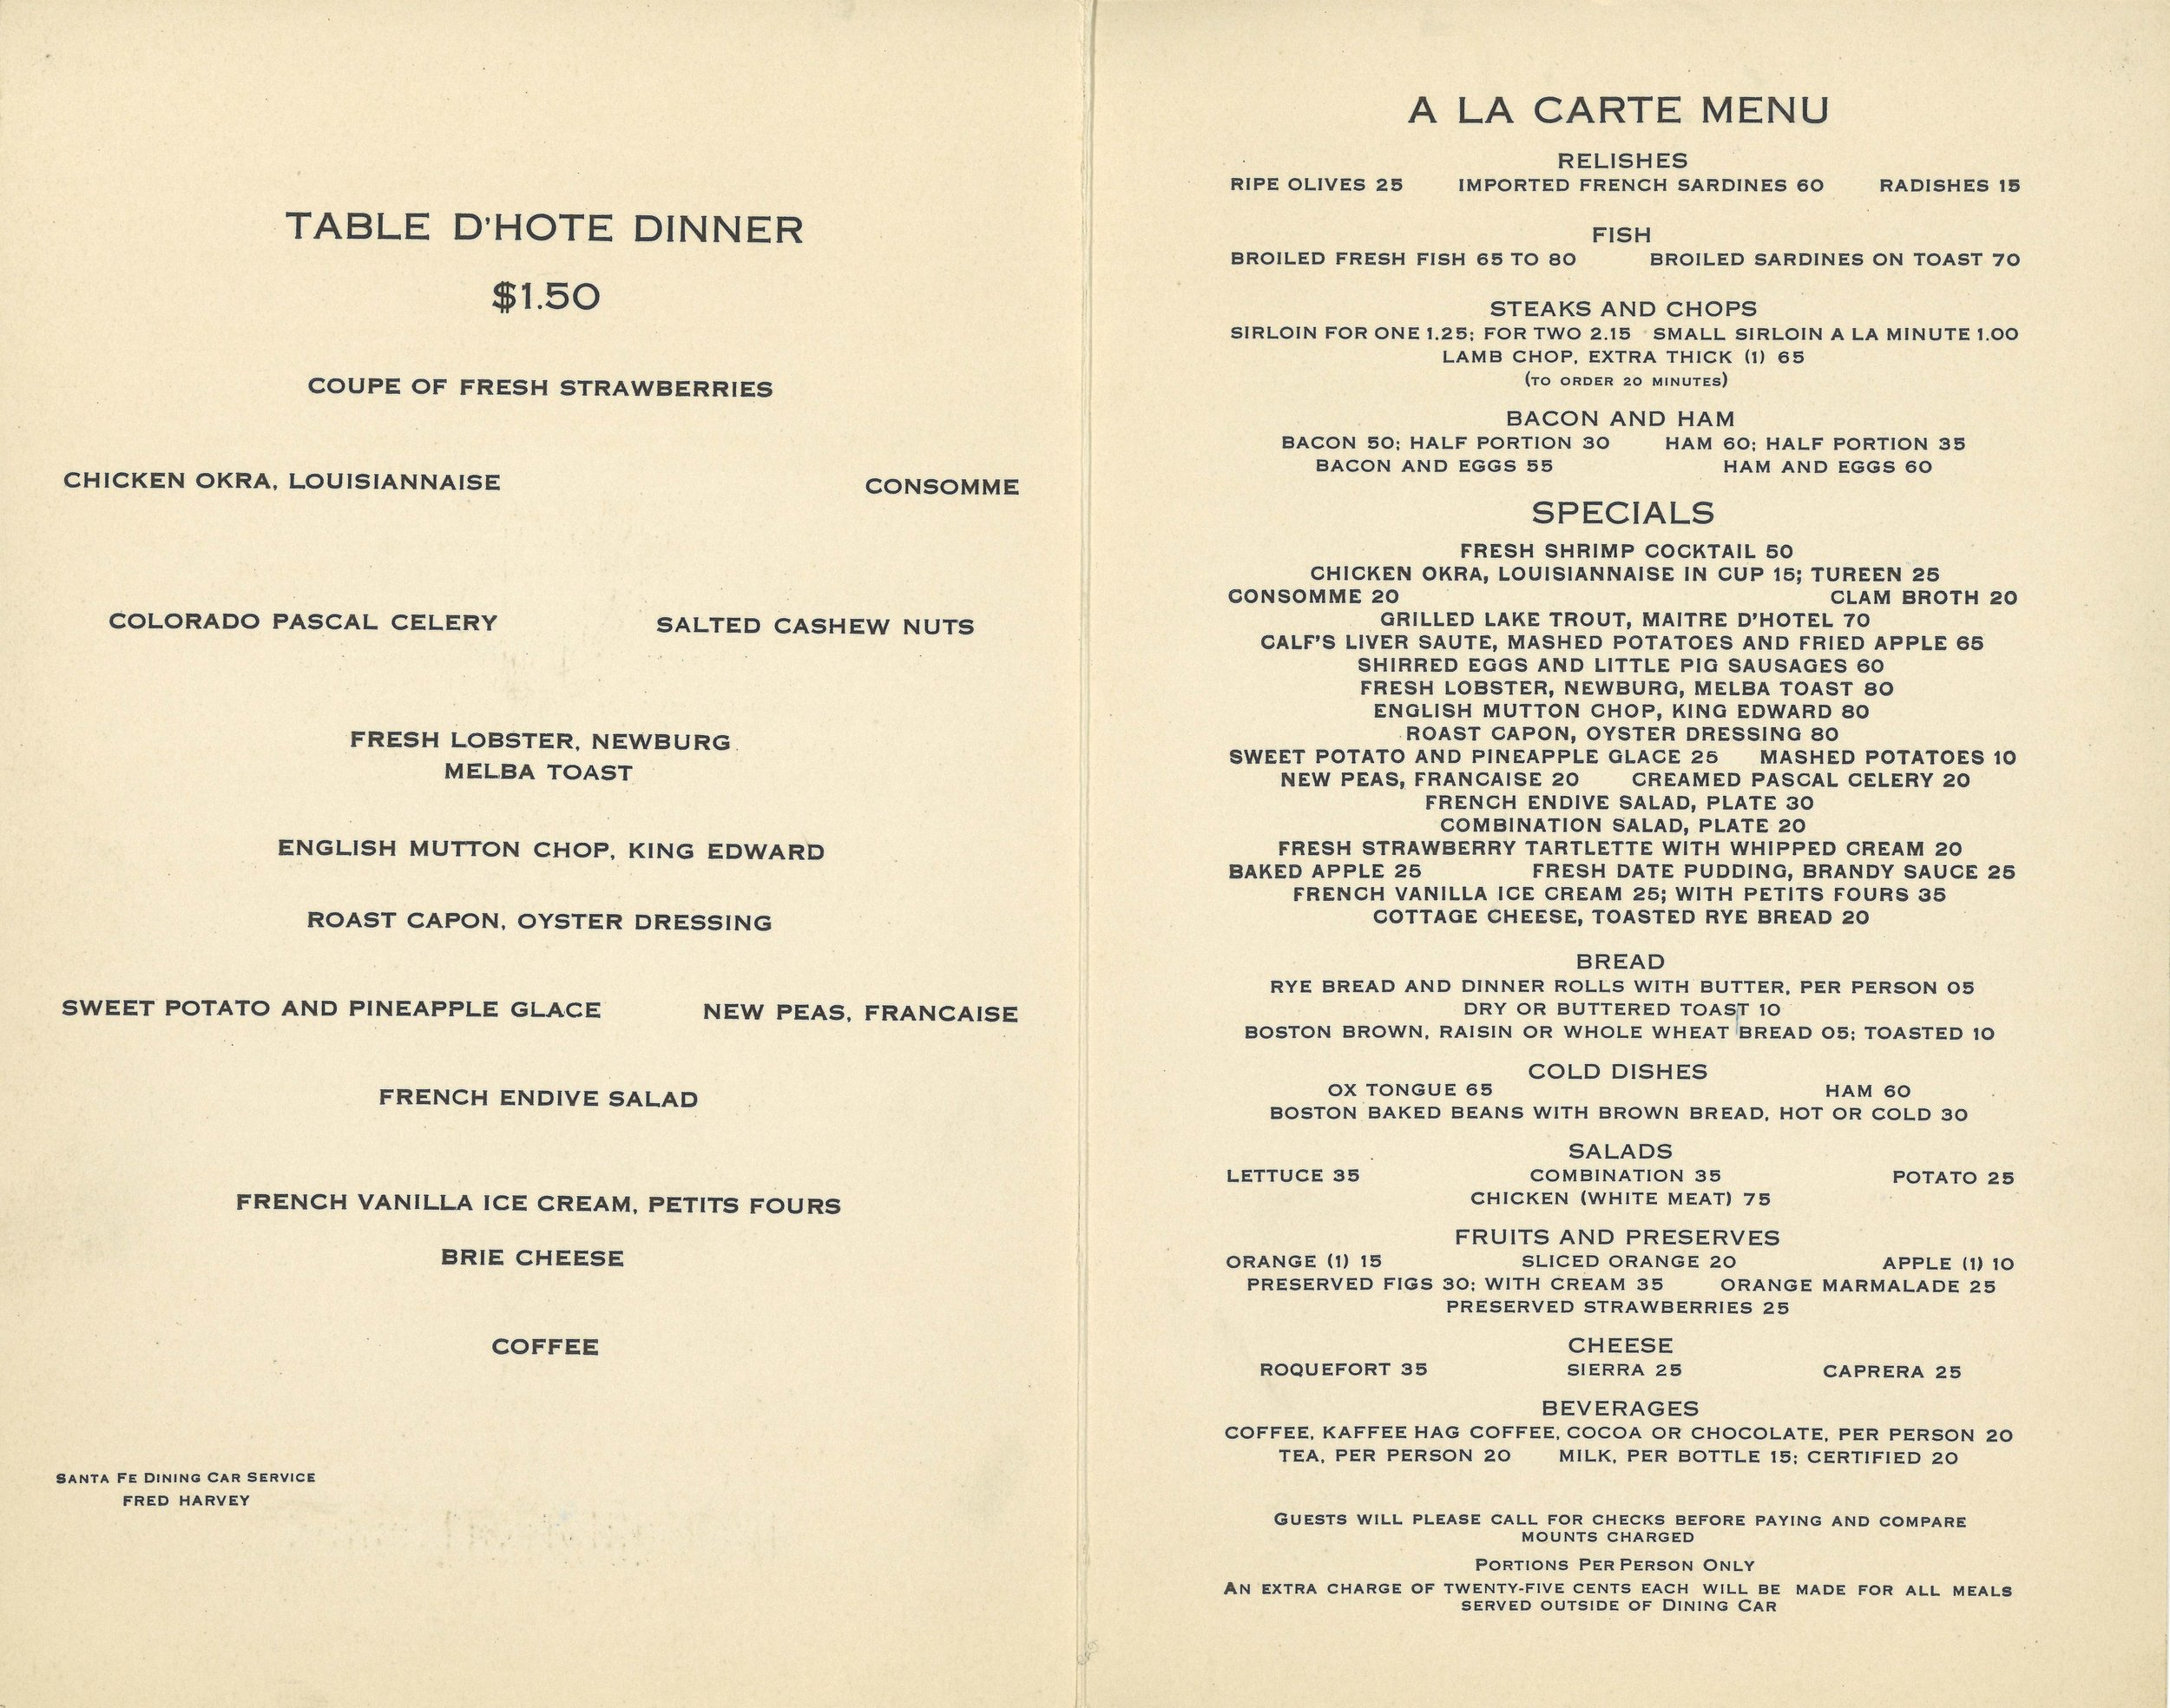 Santa Fe The Claifornia Limited Dinner Menu Jan 1934 -2.jpg